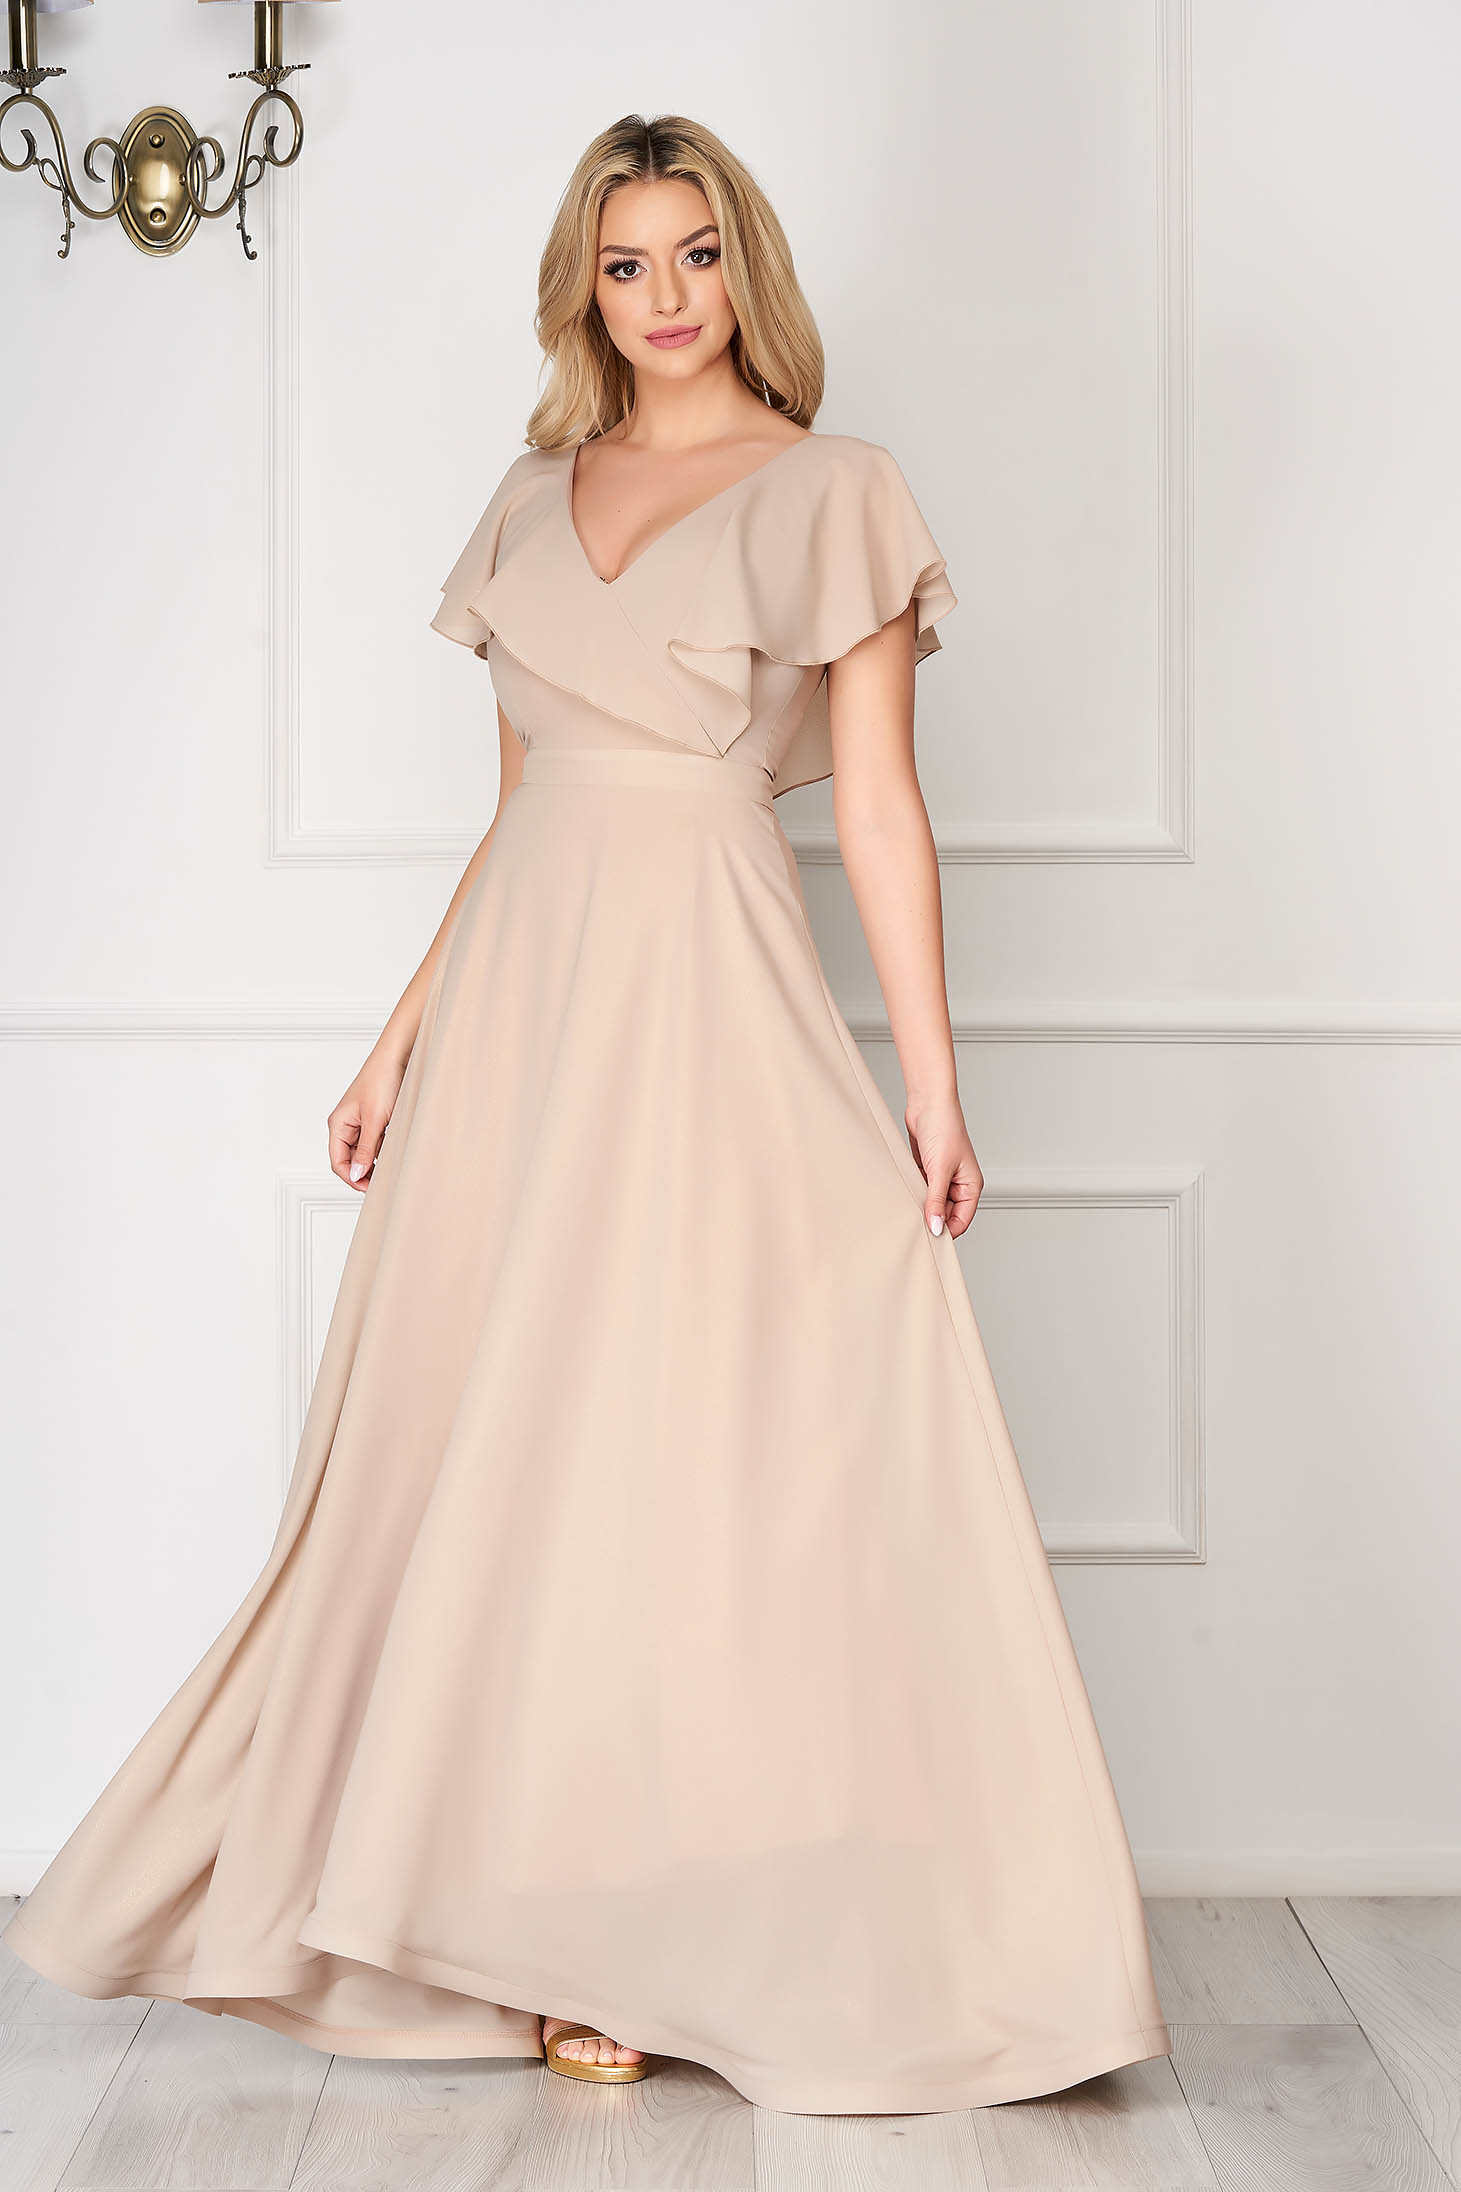 Dress StarShinerS cream occasional flaring cut frilly trim around cleavage line from veil fabric